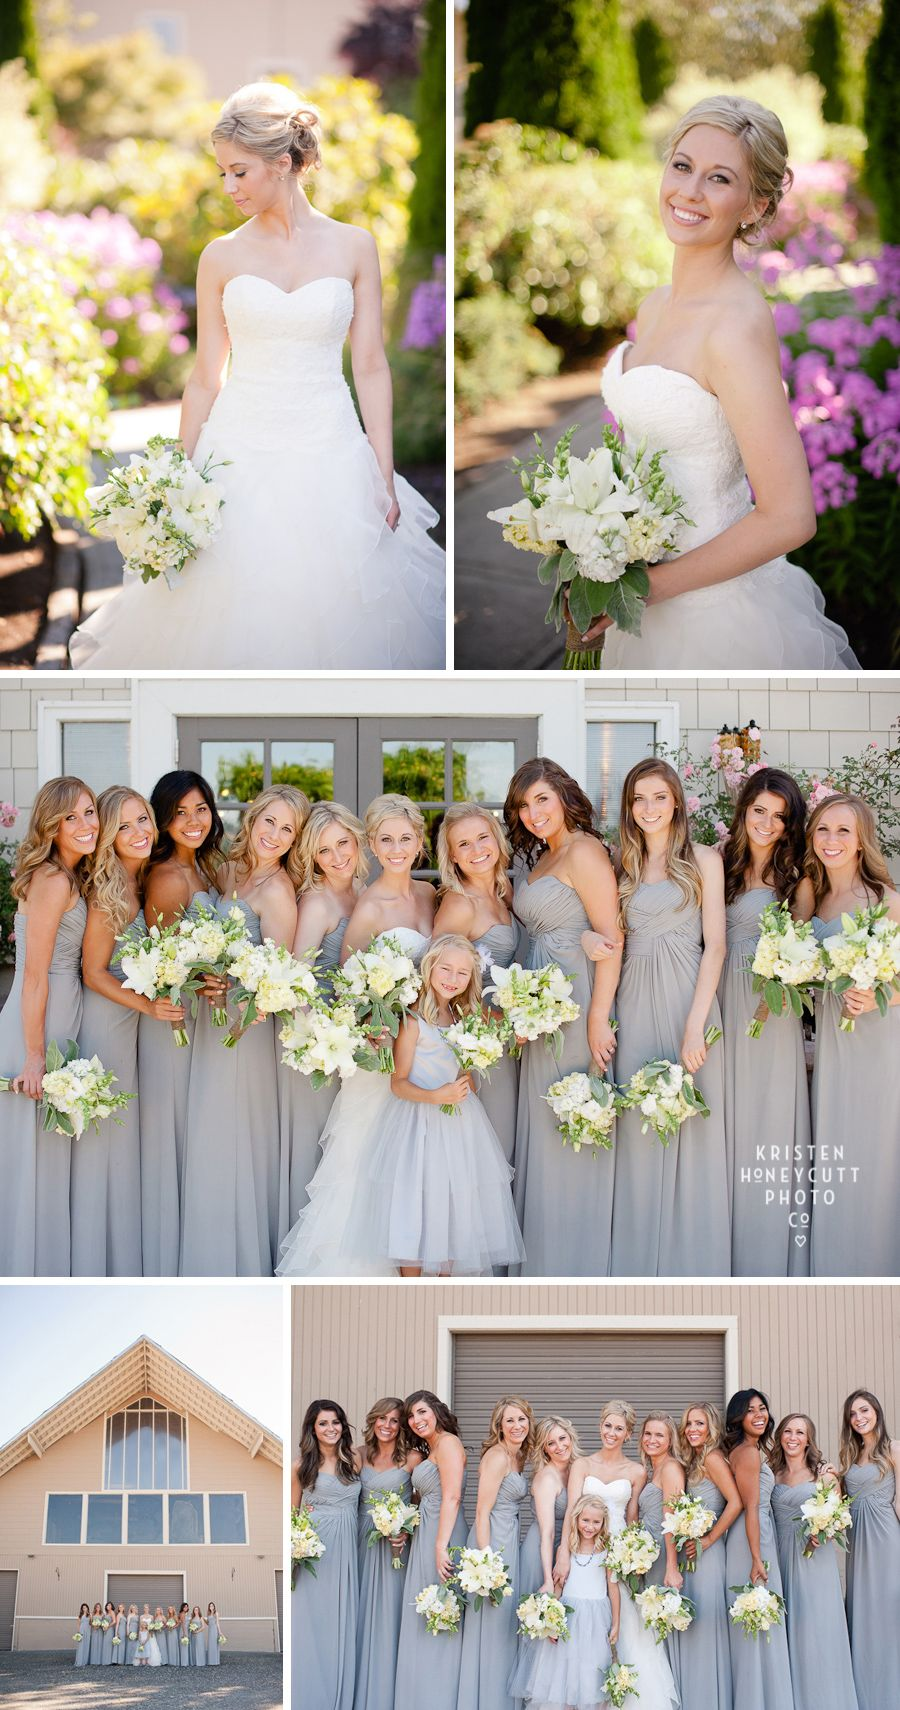 Lord hill farms country rustic wedding in seattle wa wedding the grey dresses have a flattering waistline for anyone lord hill farms country rustic wedding in seattle wa bridesmaid dress in platinum grey ombrellifo Choice Image